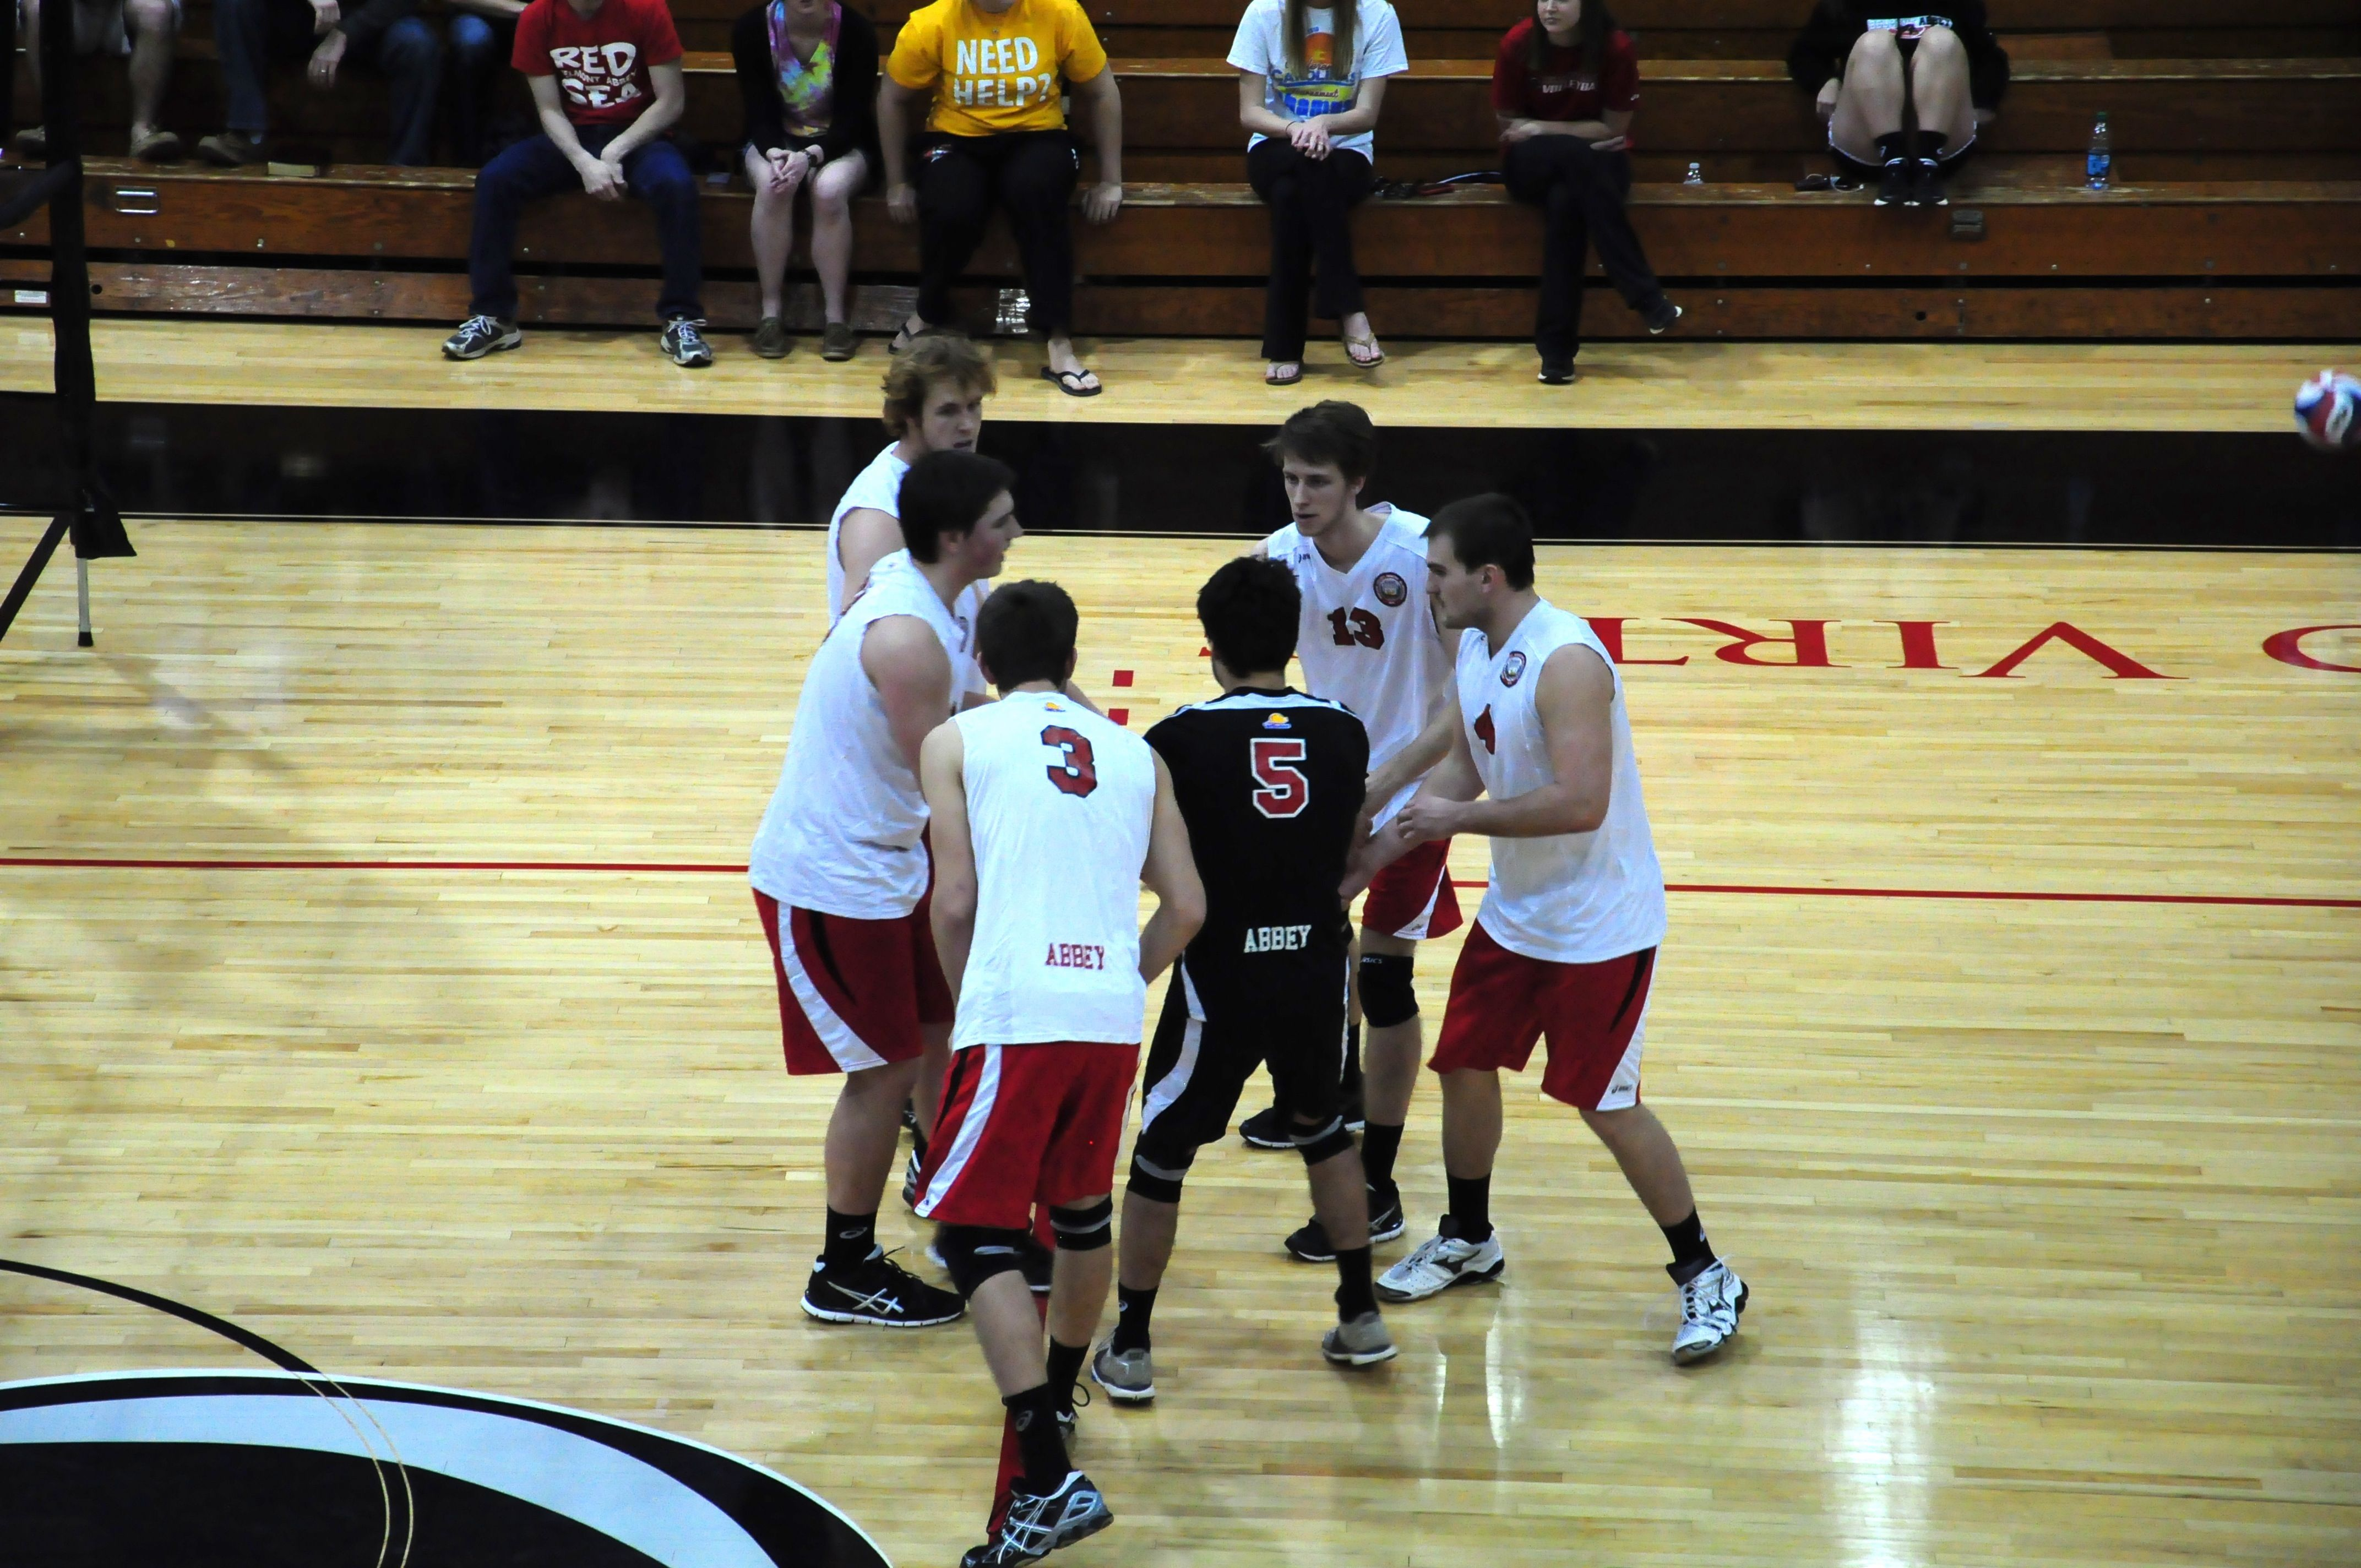 Men S Volleyball Vs Ball State 3 15 2013 Beware The Ides Of March Mens Volleyball Volleyball Men